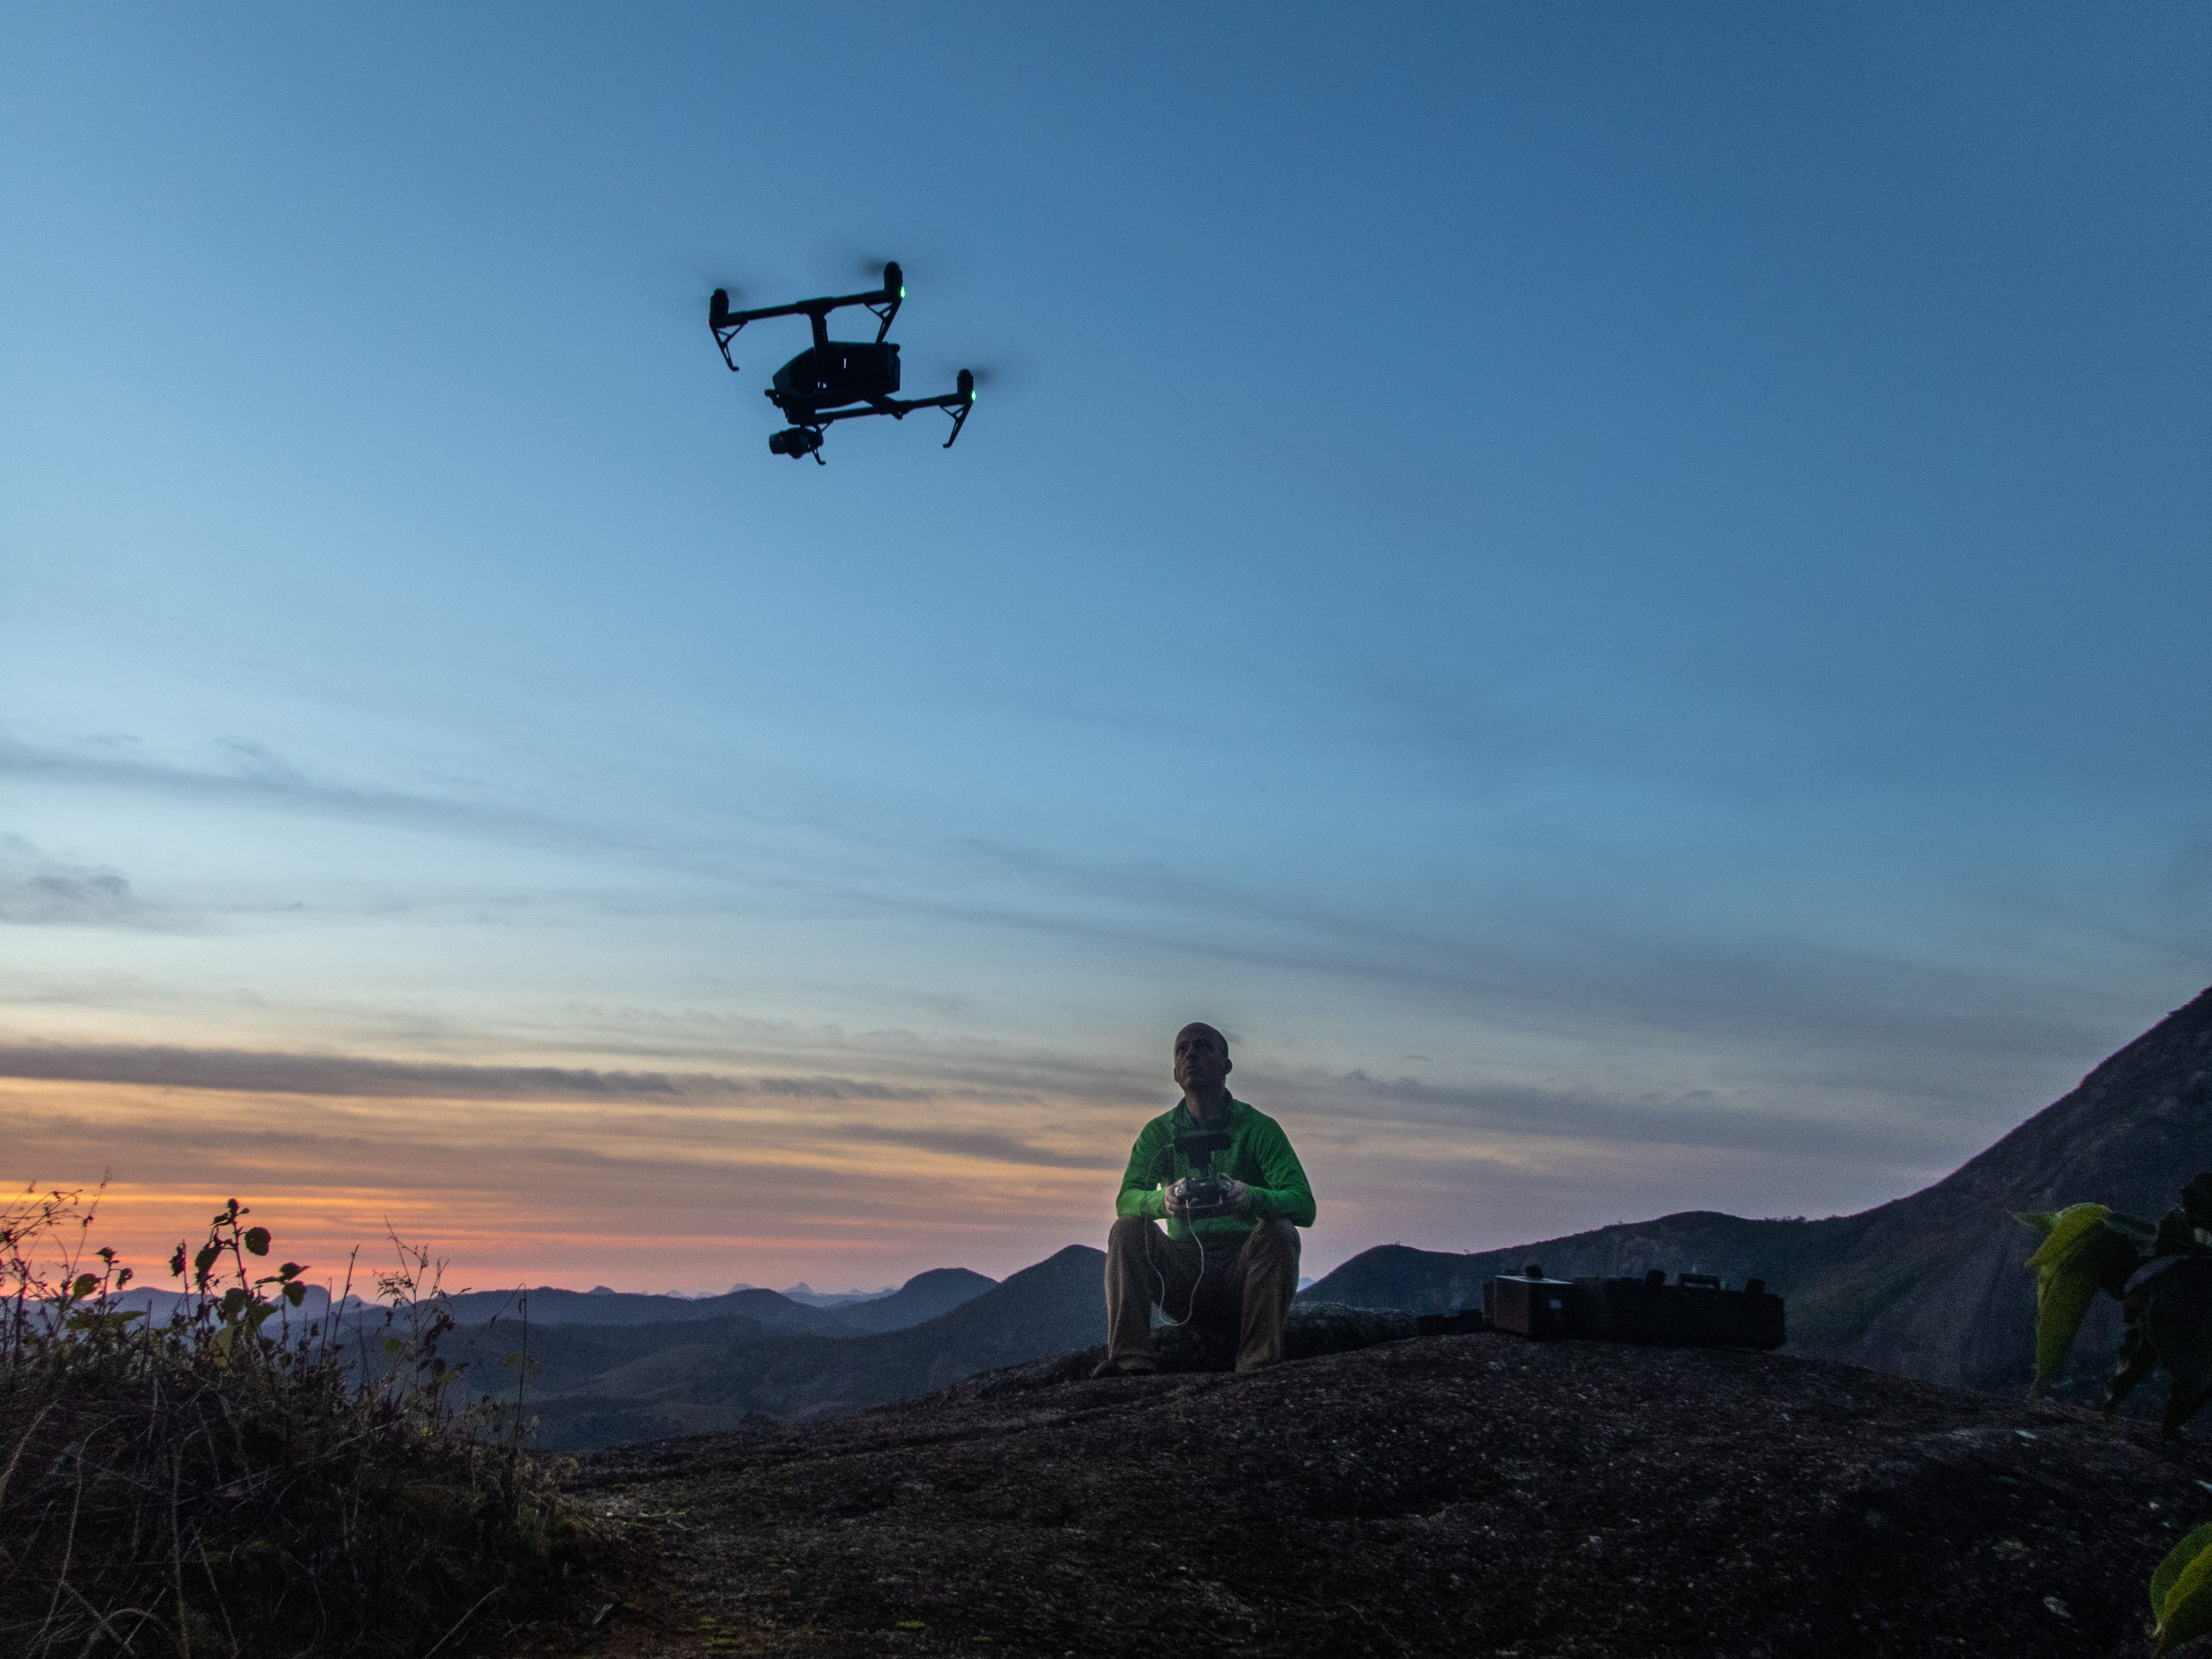 Aerial Filming Service using Drones